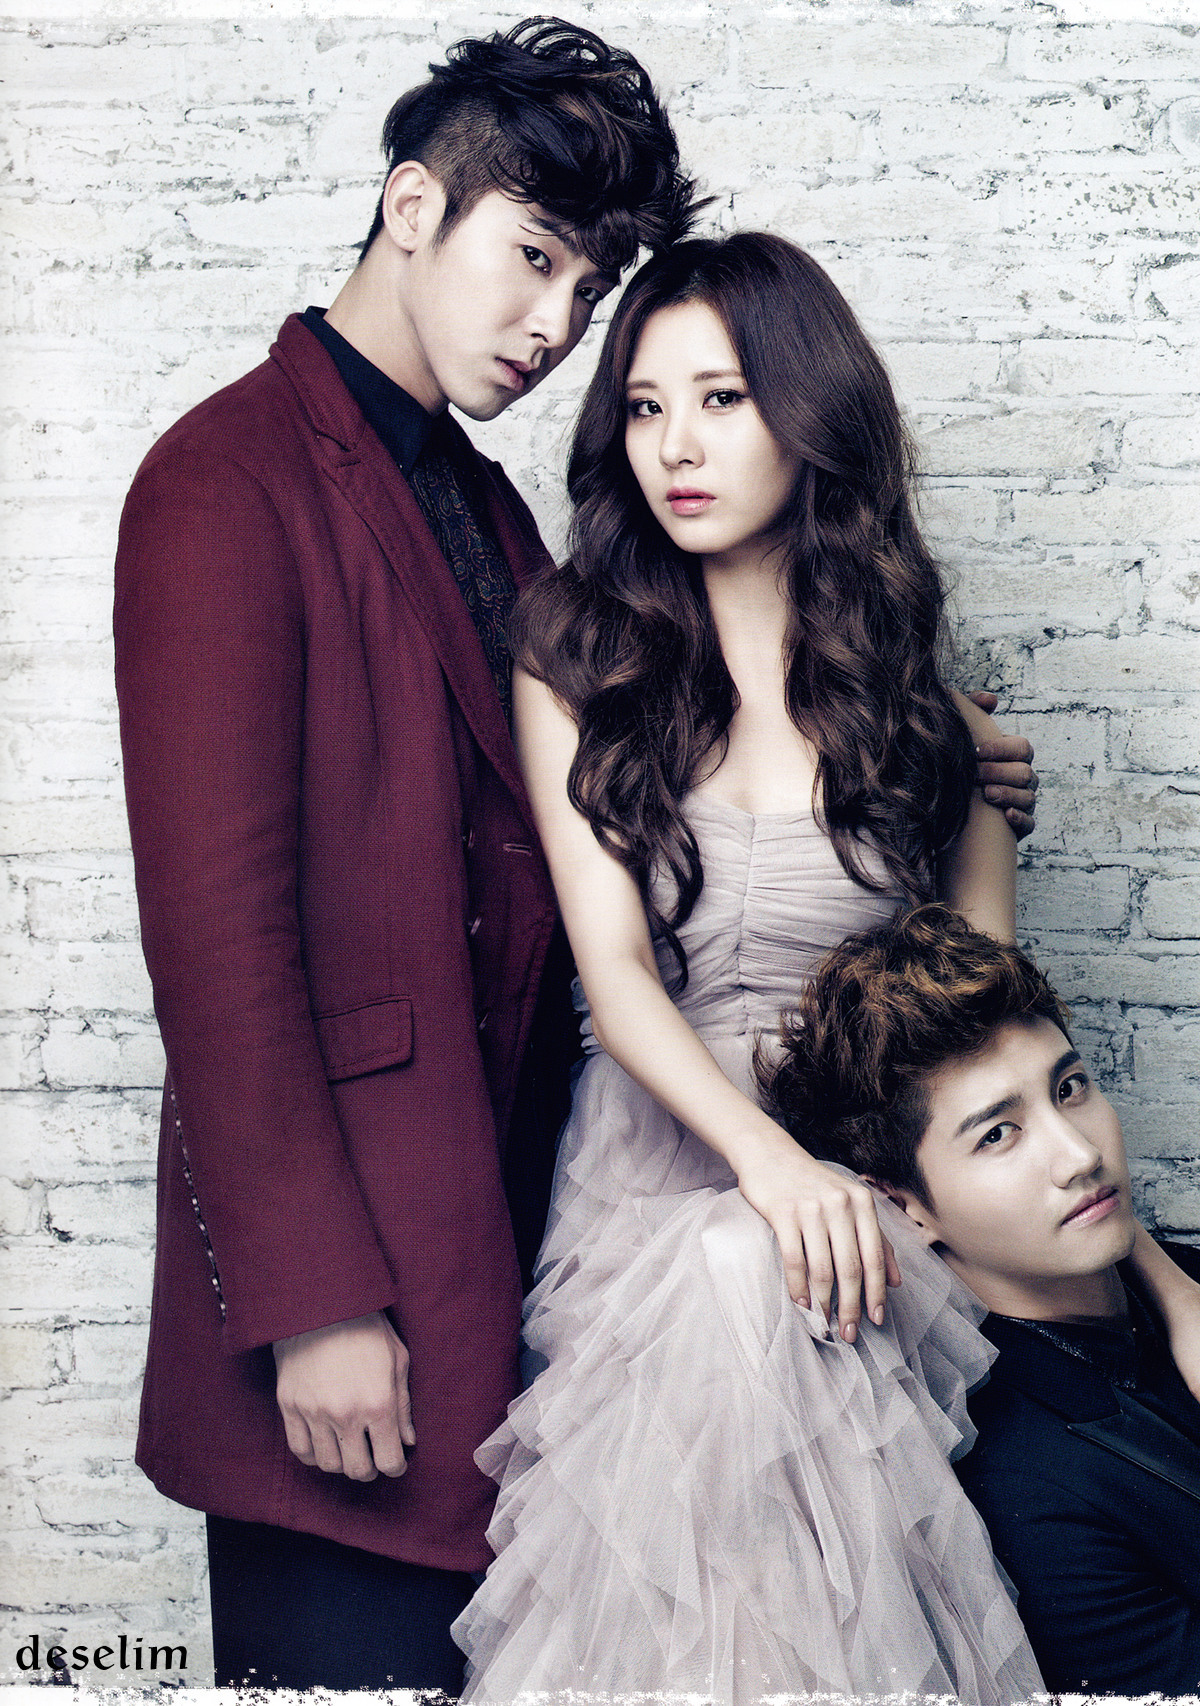 Tvxq Joins Snsd S Seohyun For Ceci Seoulbeats